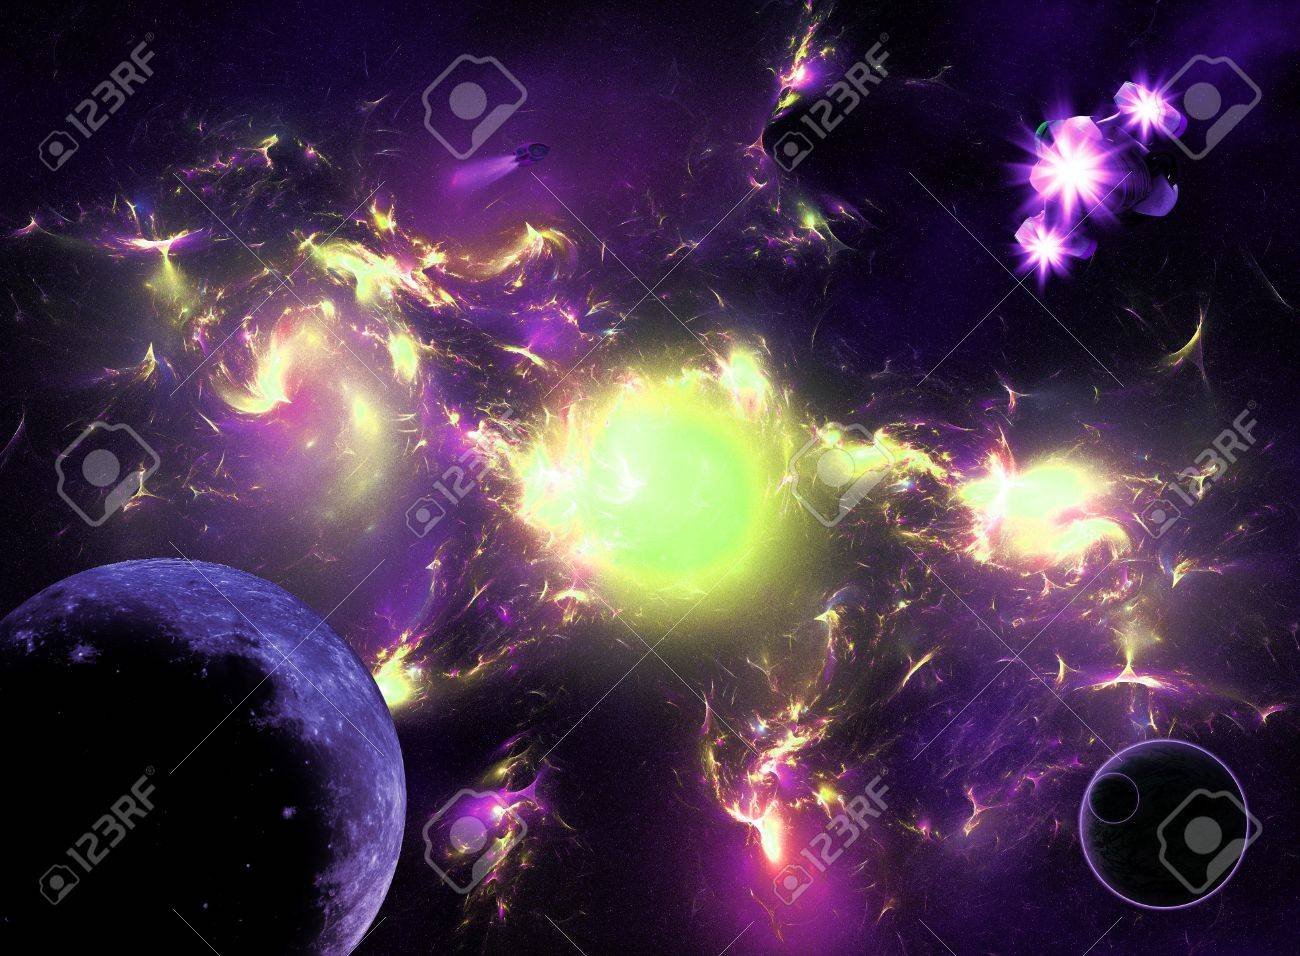 Colorful Galaxy With Planets